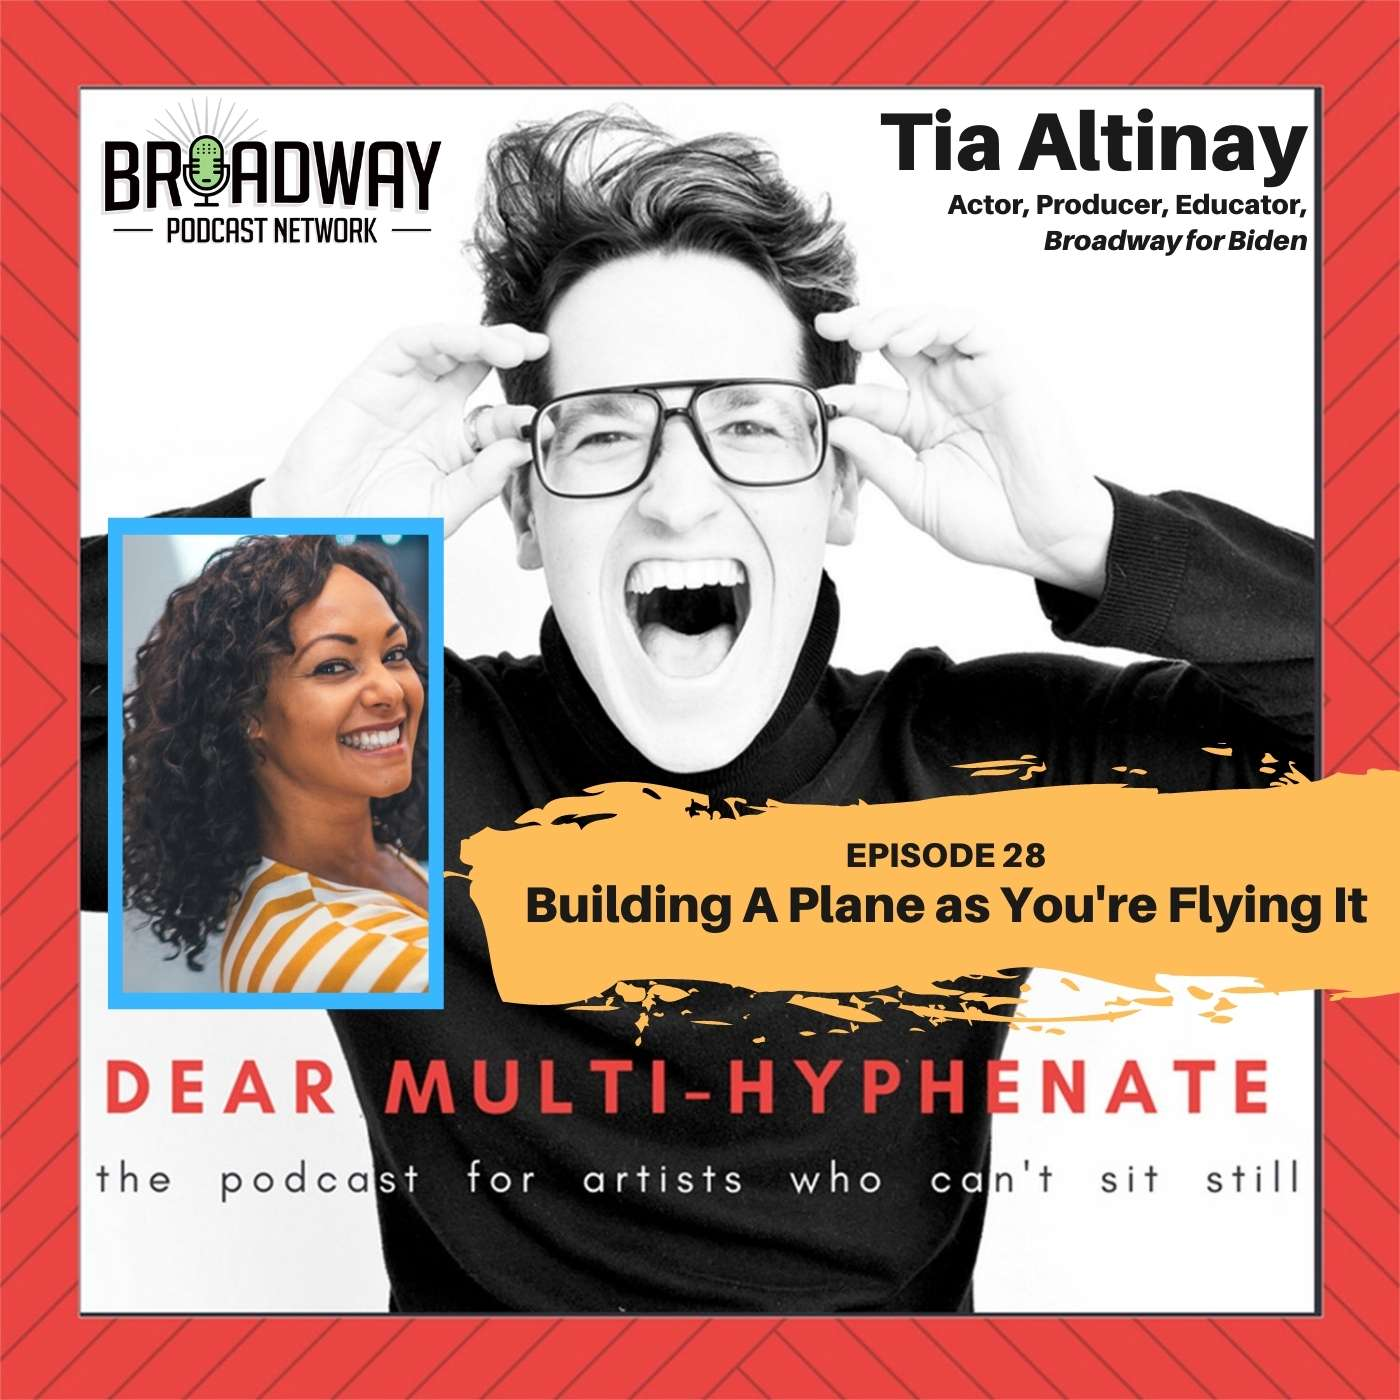 #28 - Dear Multihyphenate - #28 - Tia Altinay: Building A Plane As You're Flying ItTia Altinay: Building A Plane As You're Flying It